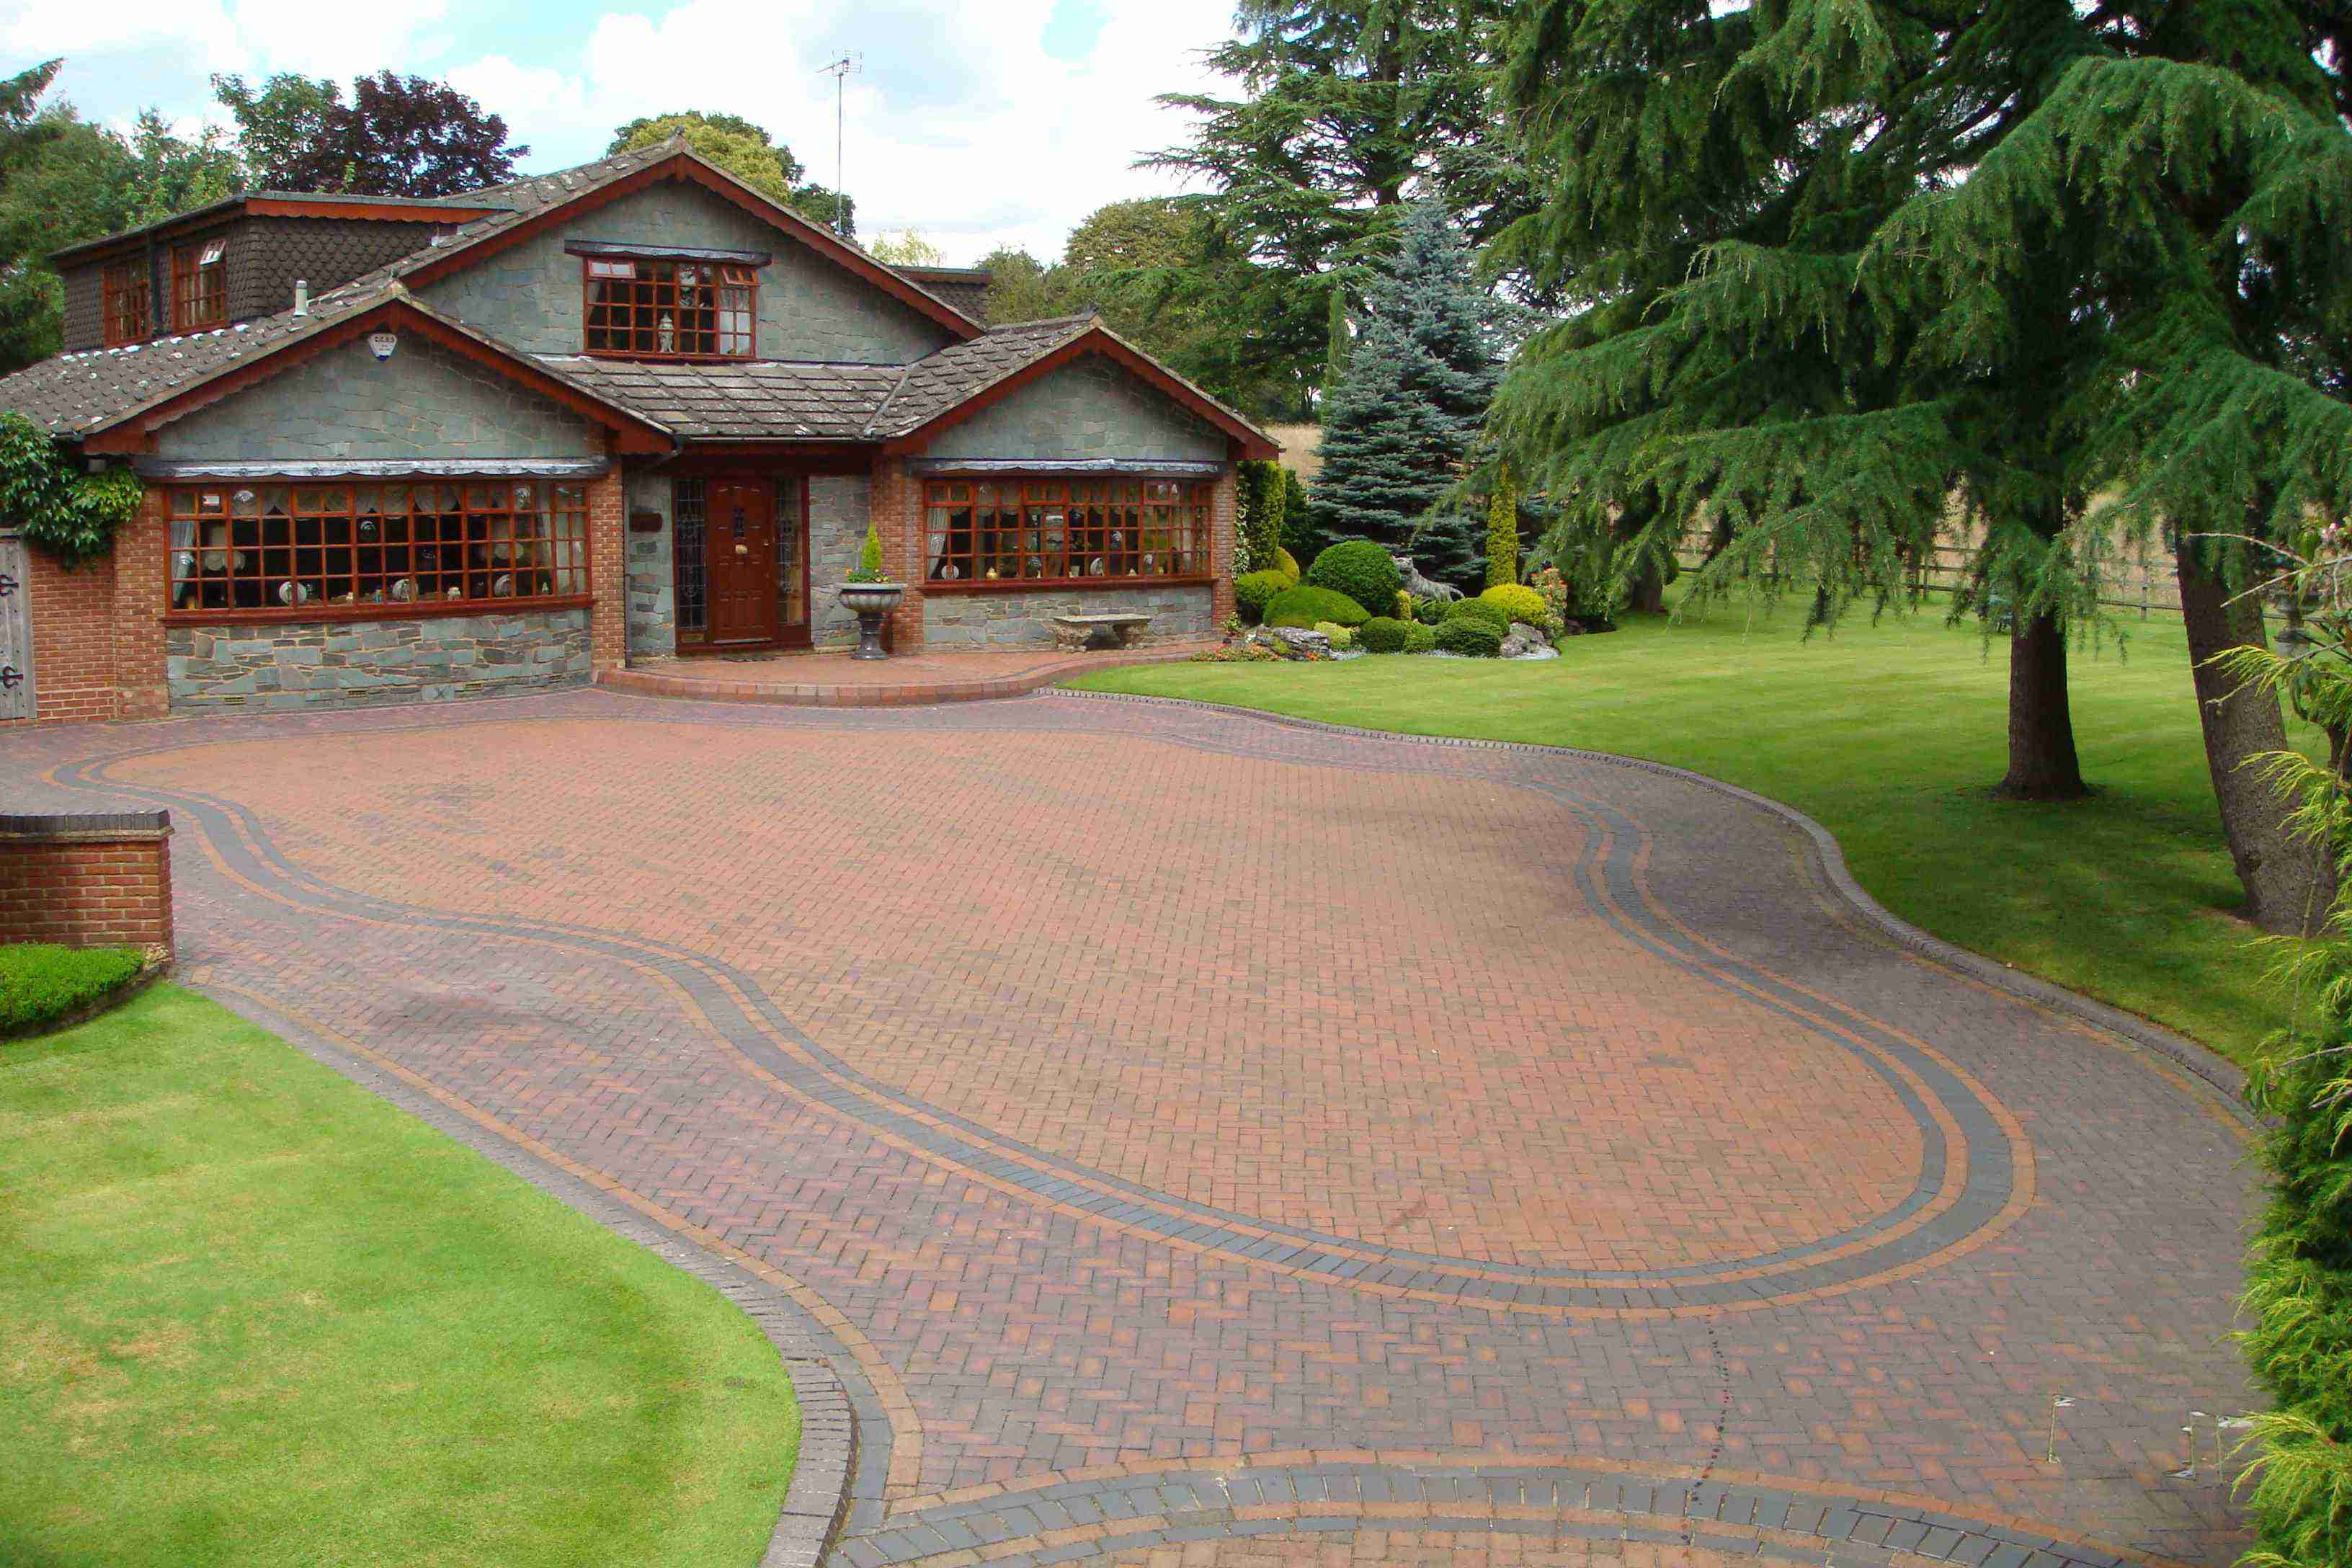 Clay Block Paving